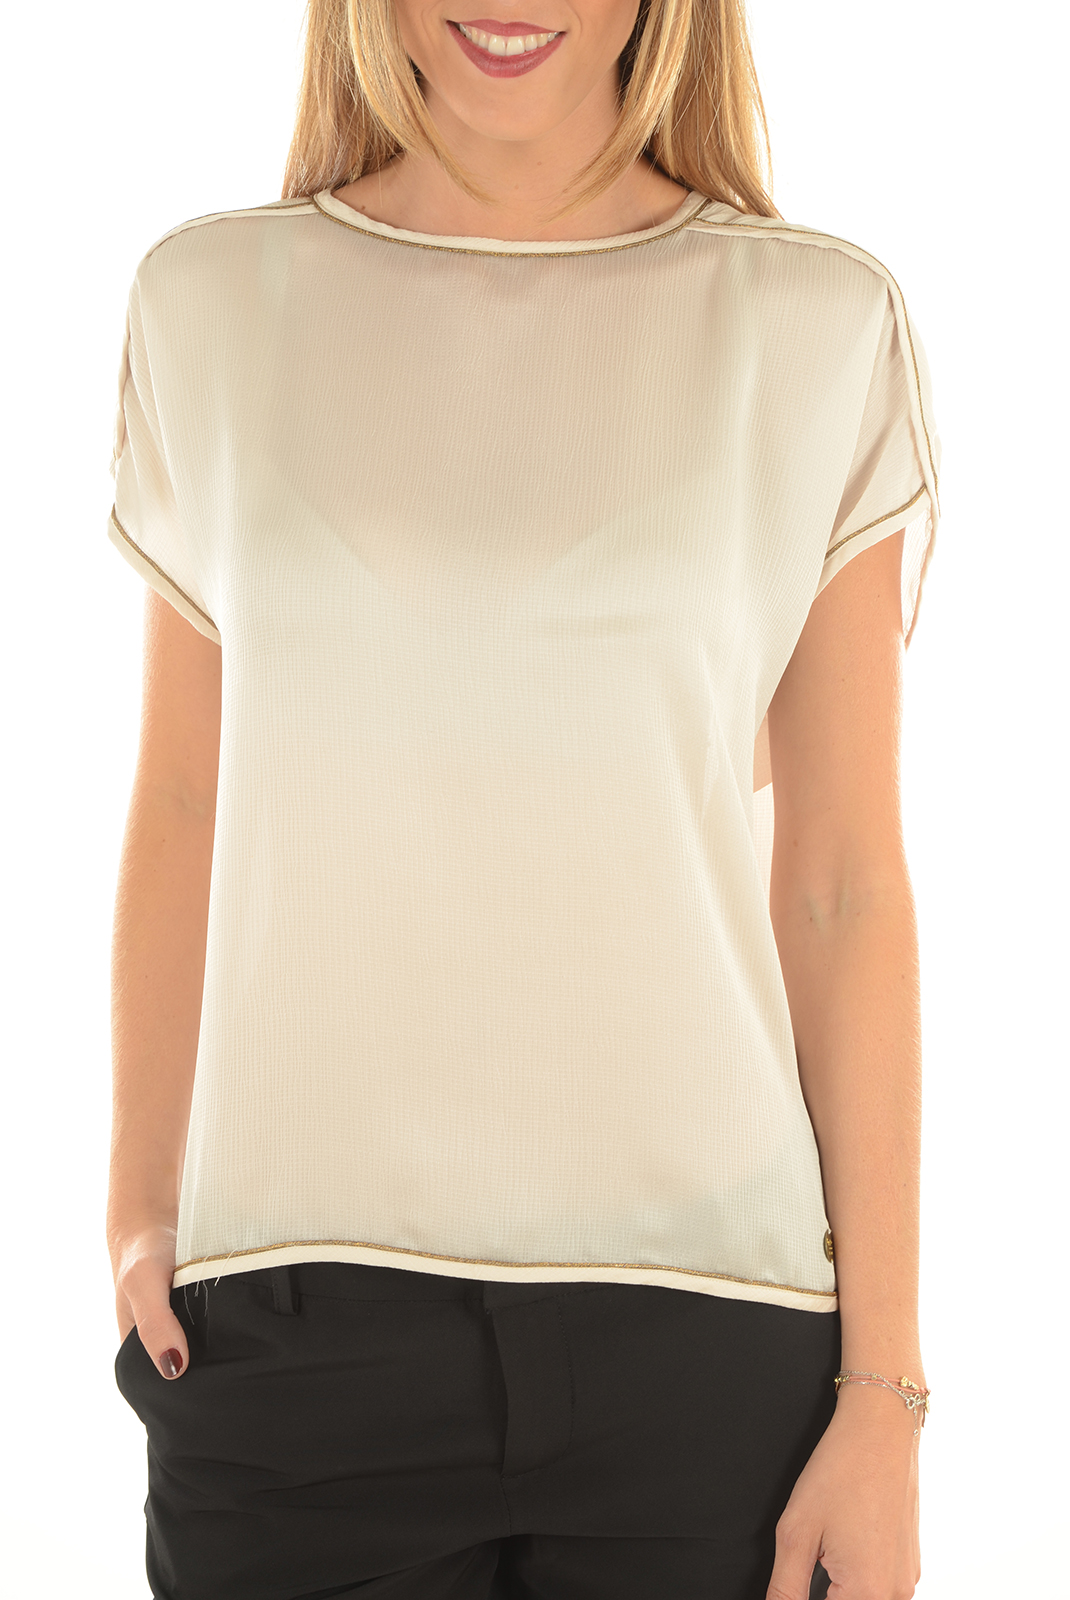 Tops & Tee shirts  Pepe jeans PL301504 ARLEY 806 CANDLE